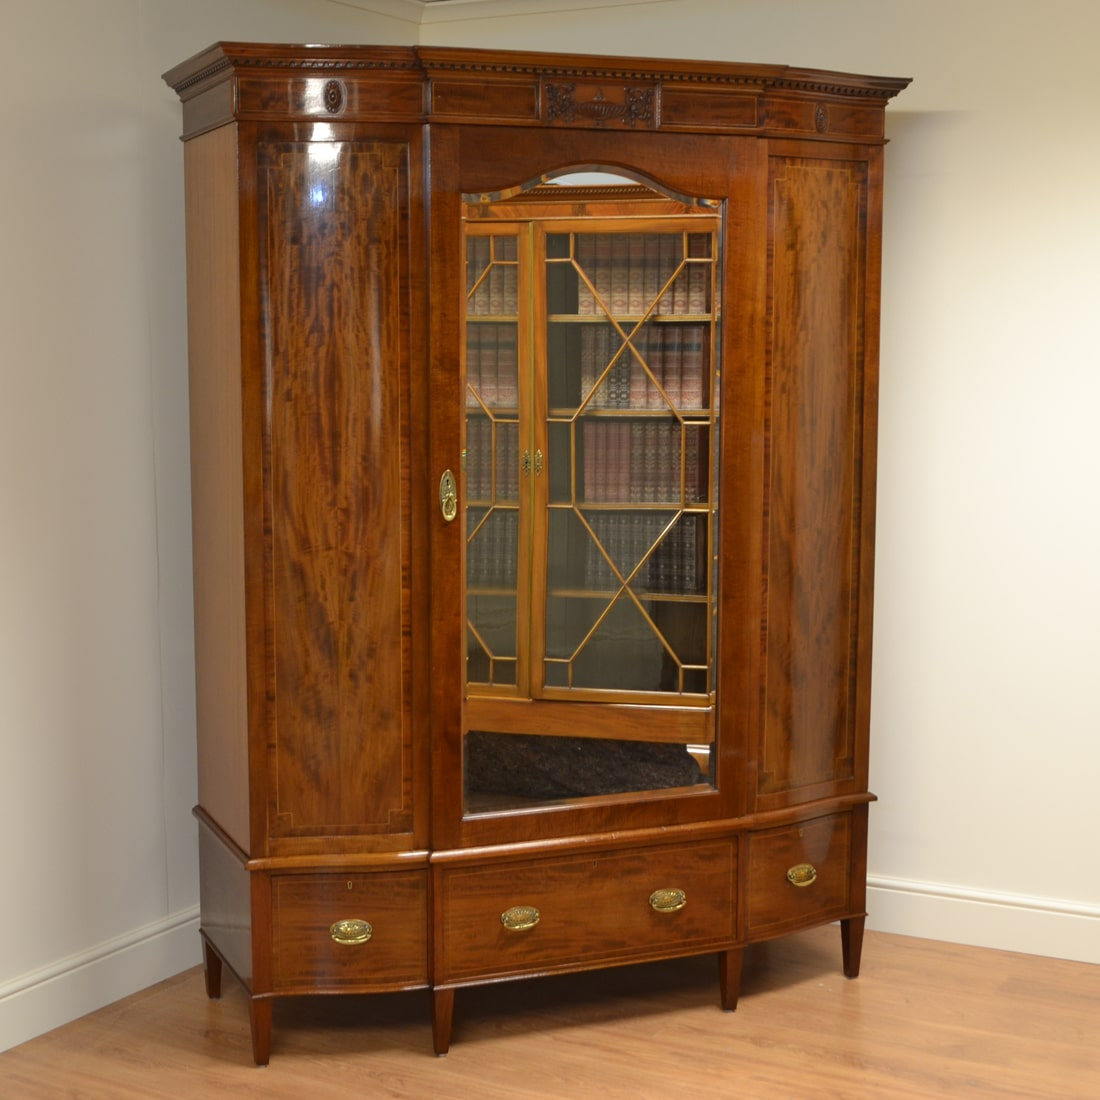 Spectacular High Quality Figured Mahogany Victorian Antique Wardrobe